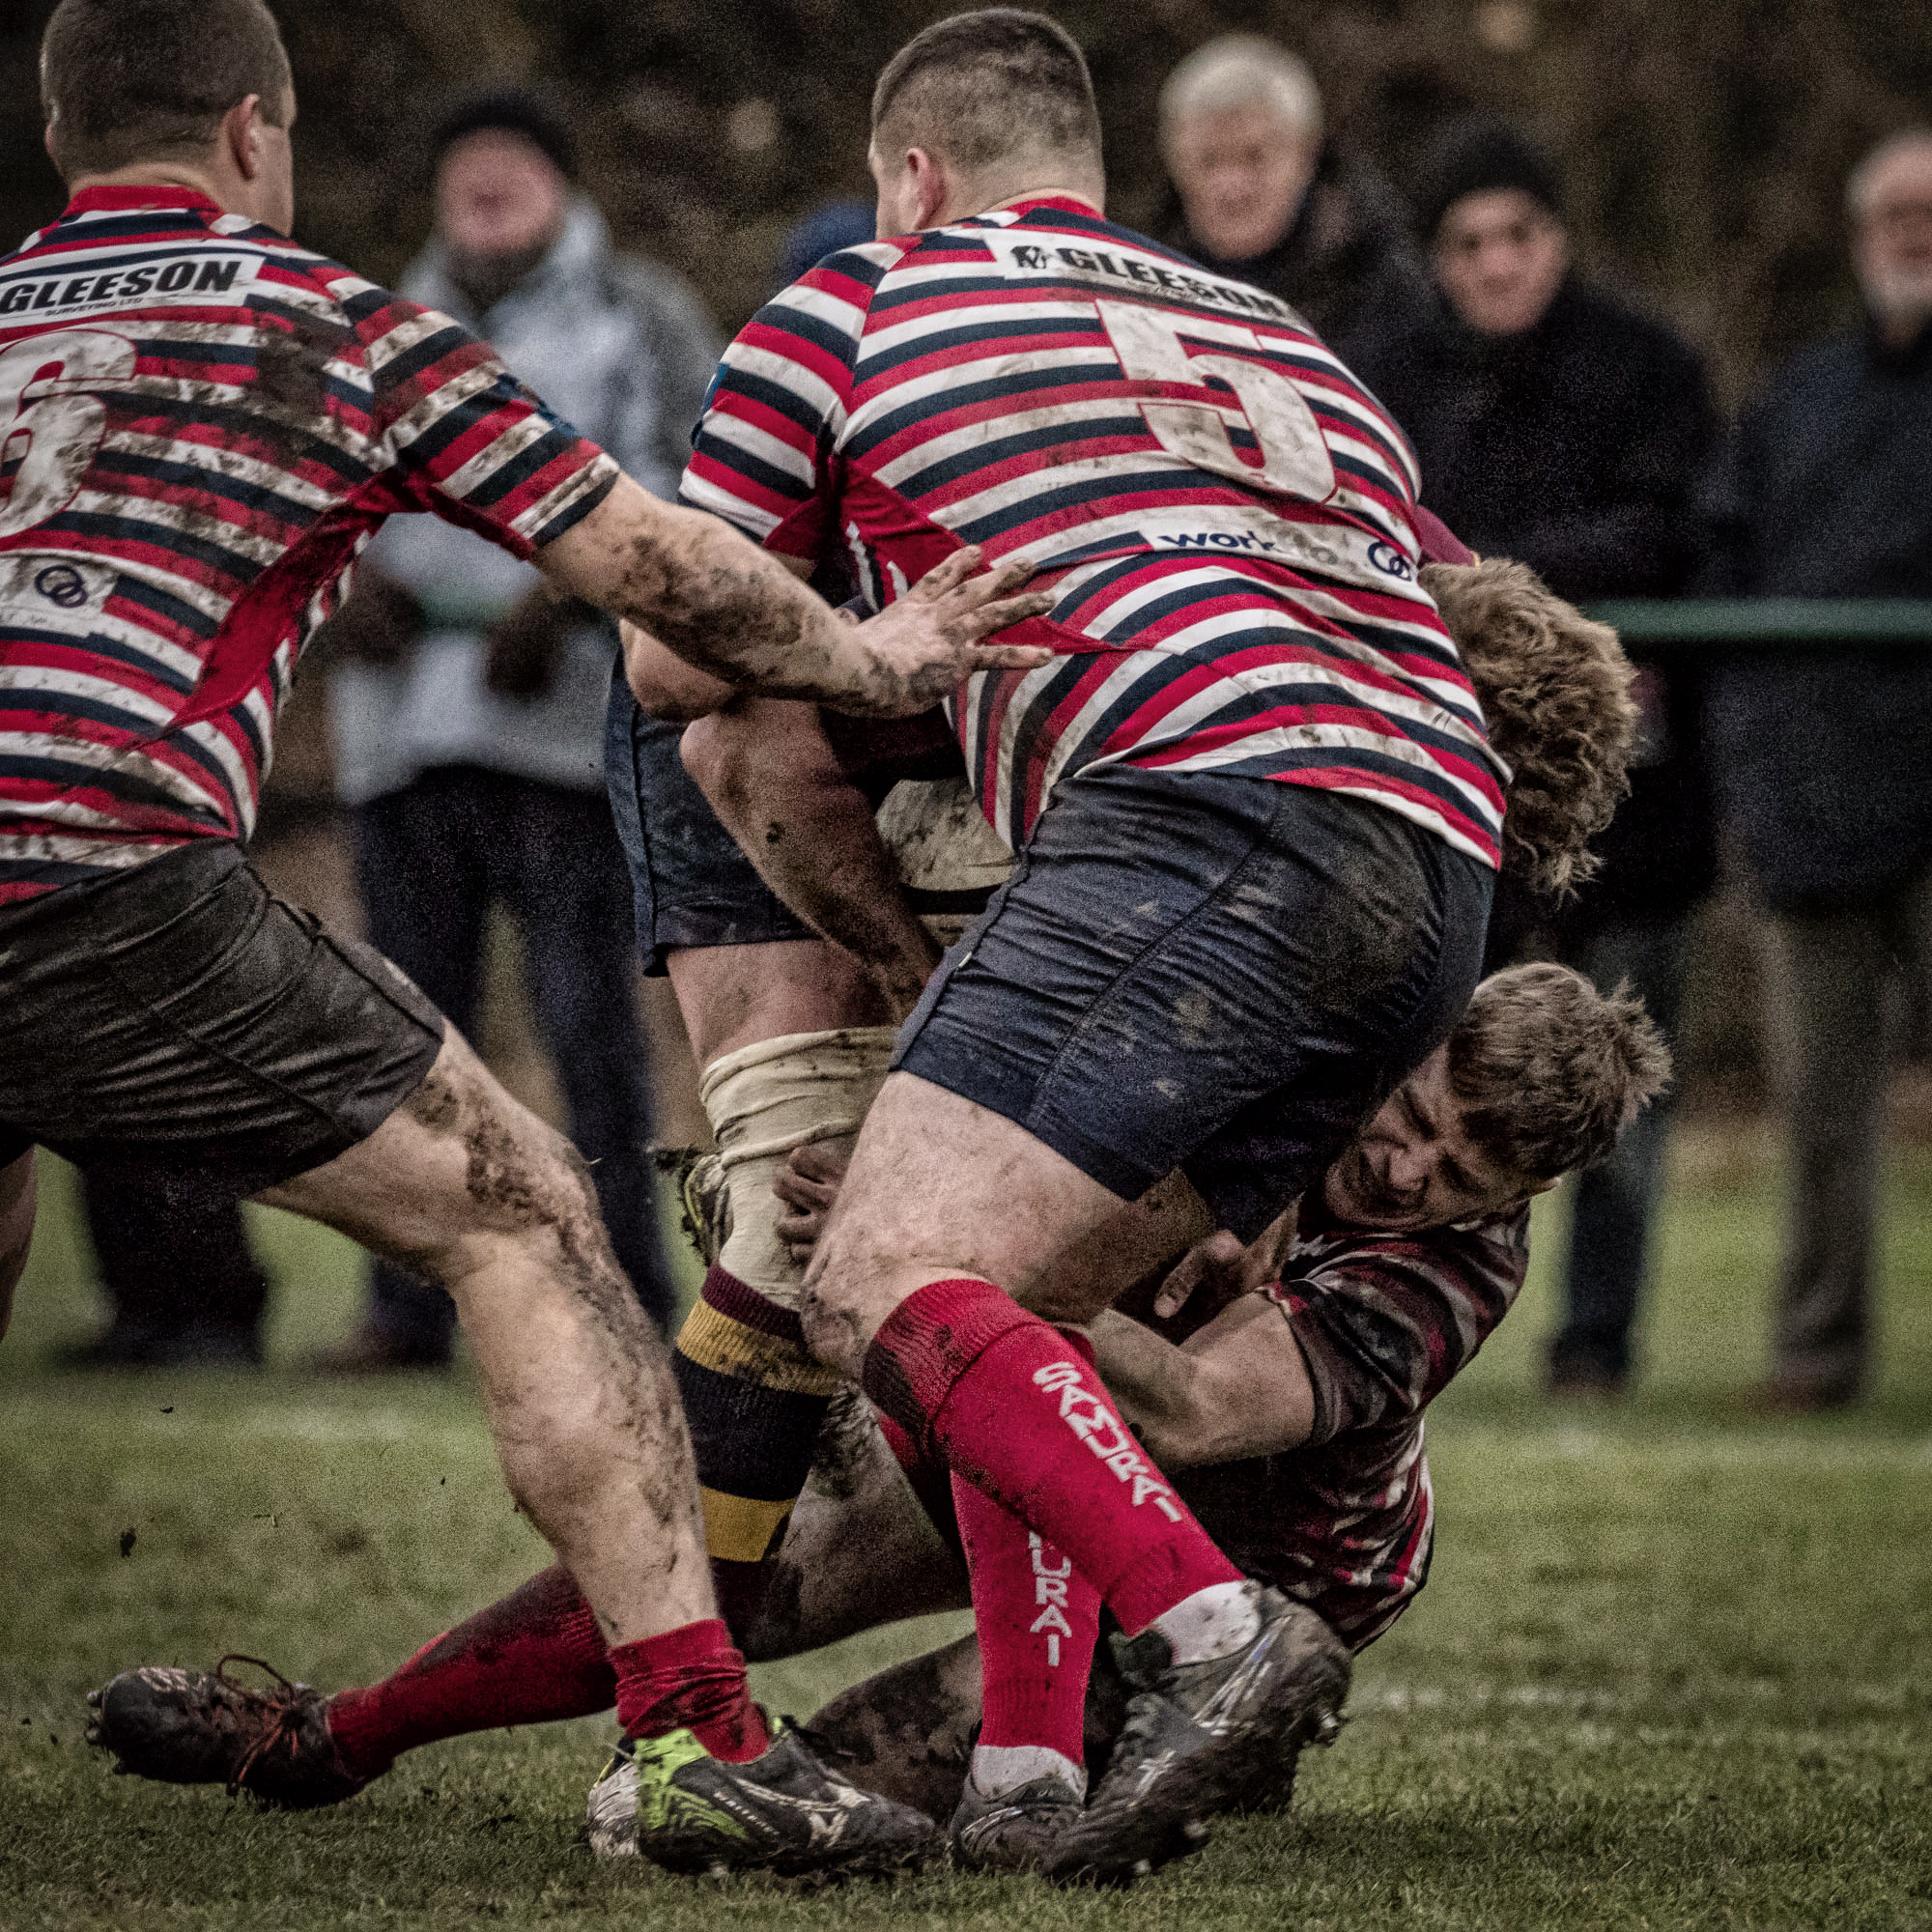 Tackles galore with minds on defence